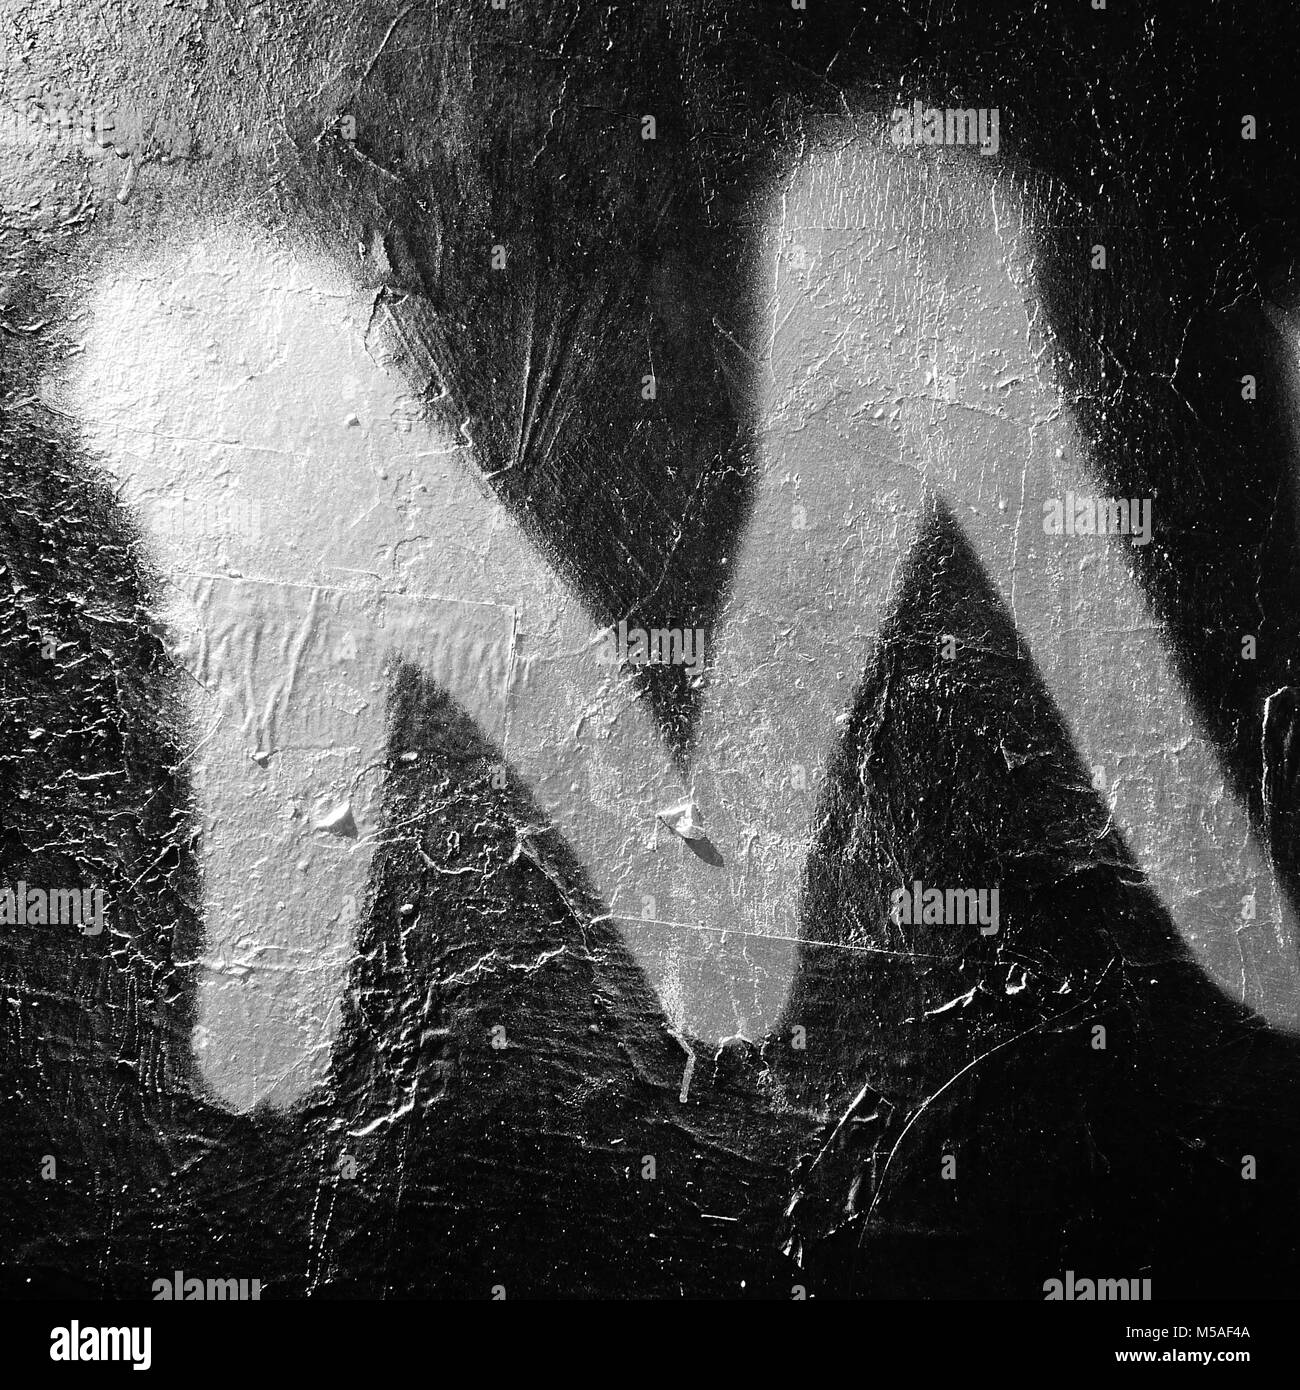 Letter M, written on a wall, Lyon, France - Stock Image